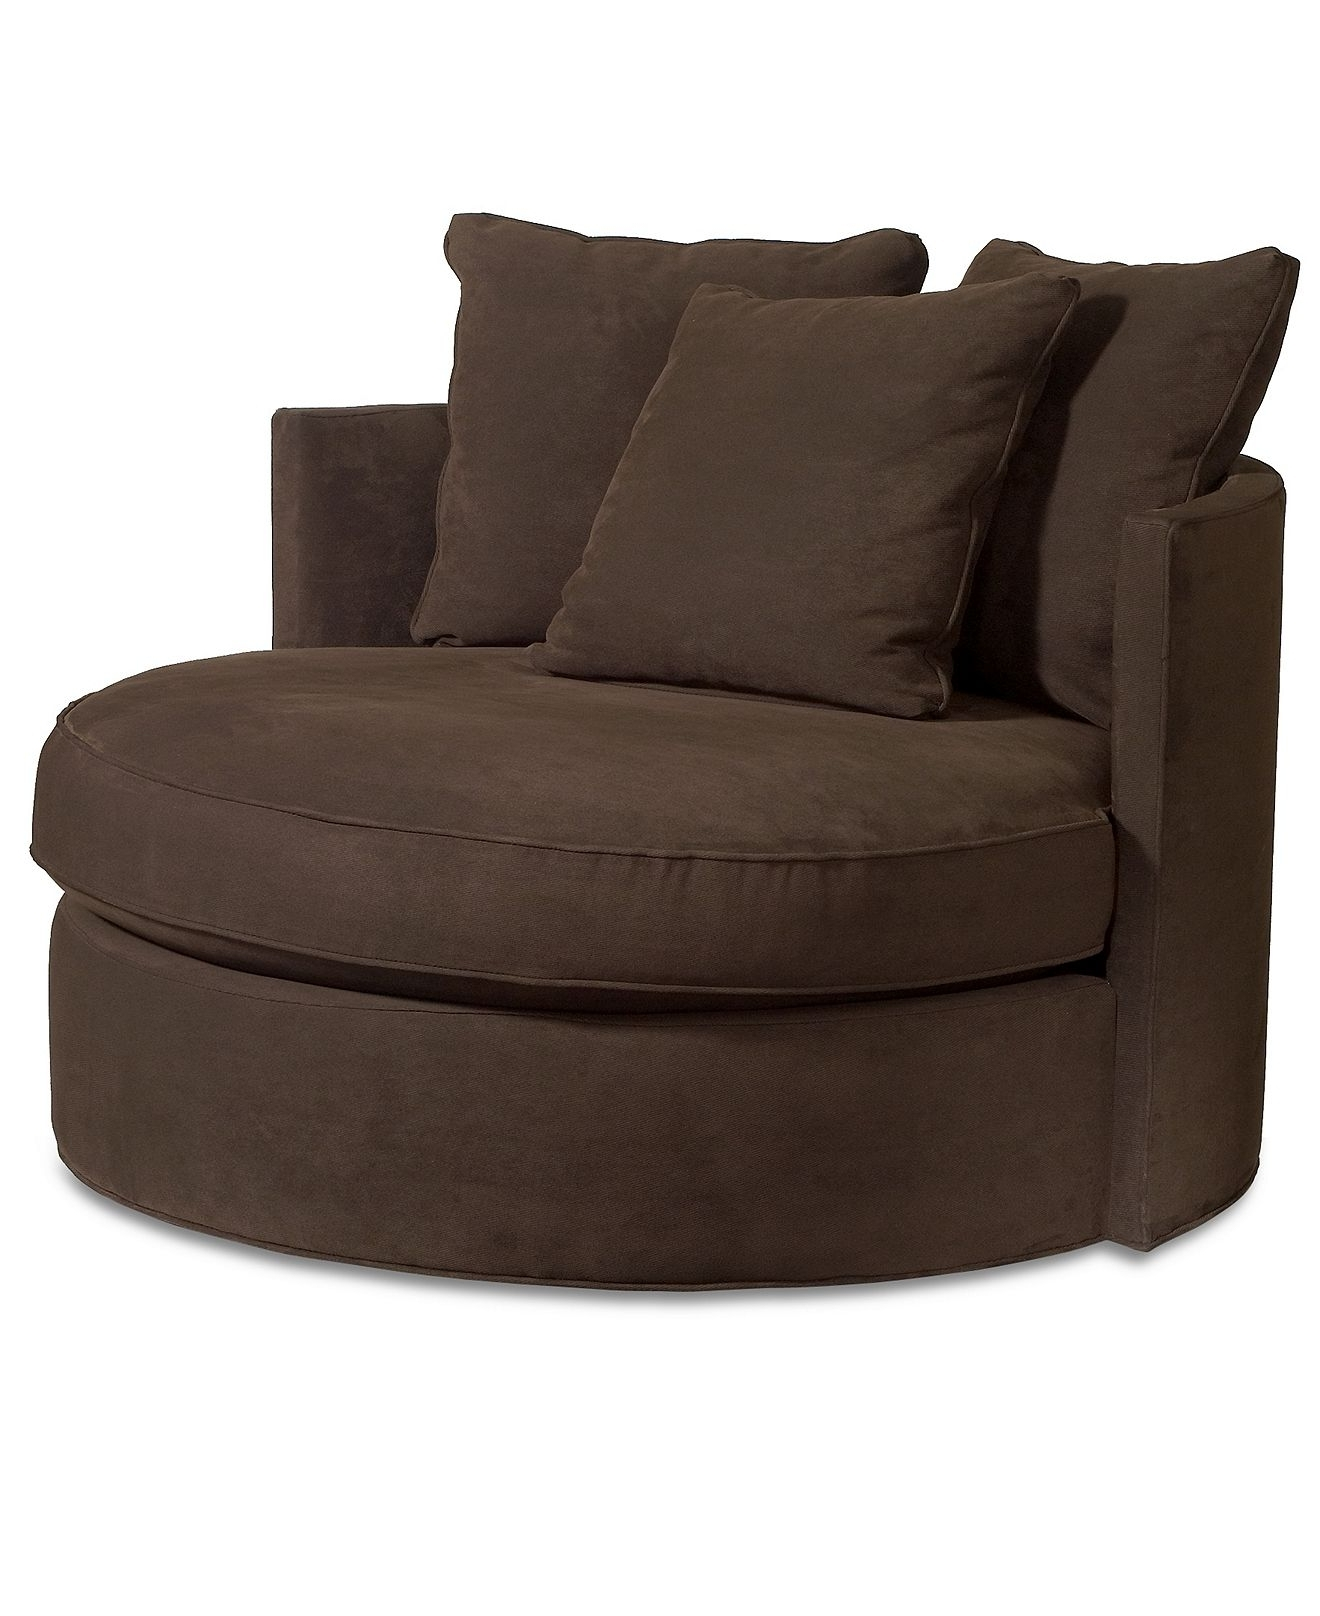 "Big Round Sofa Chairs In Most Recent Doss Godiva Fabric Microfiber Living Room Chair, Round Swivel 50""w (View 2 of 15)"